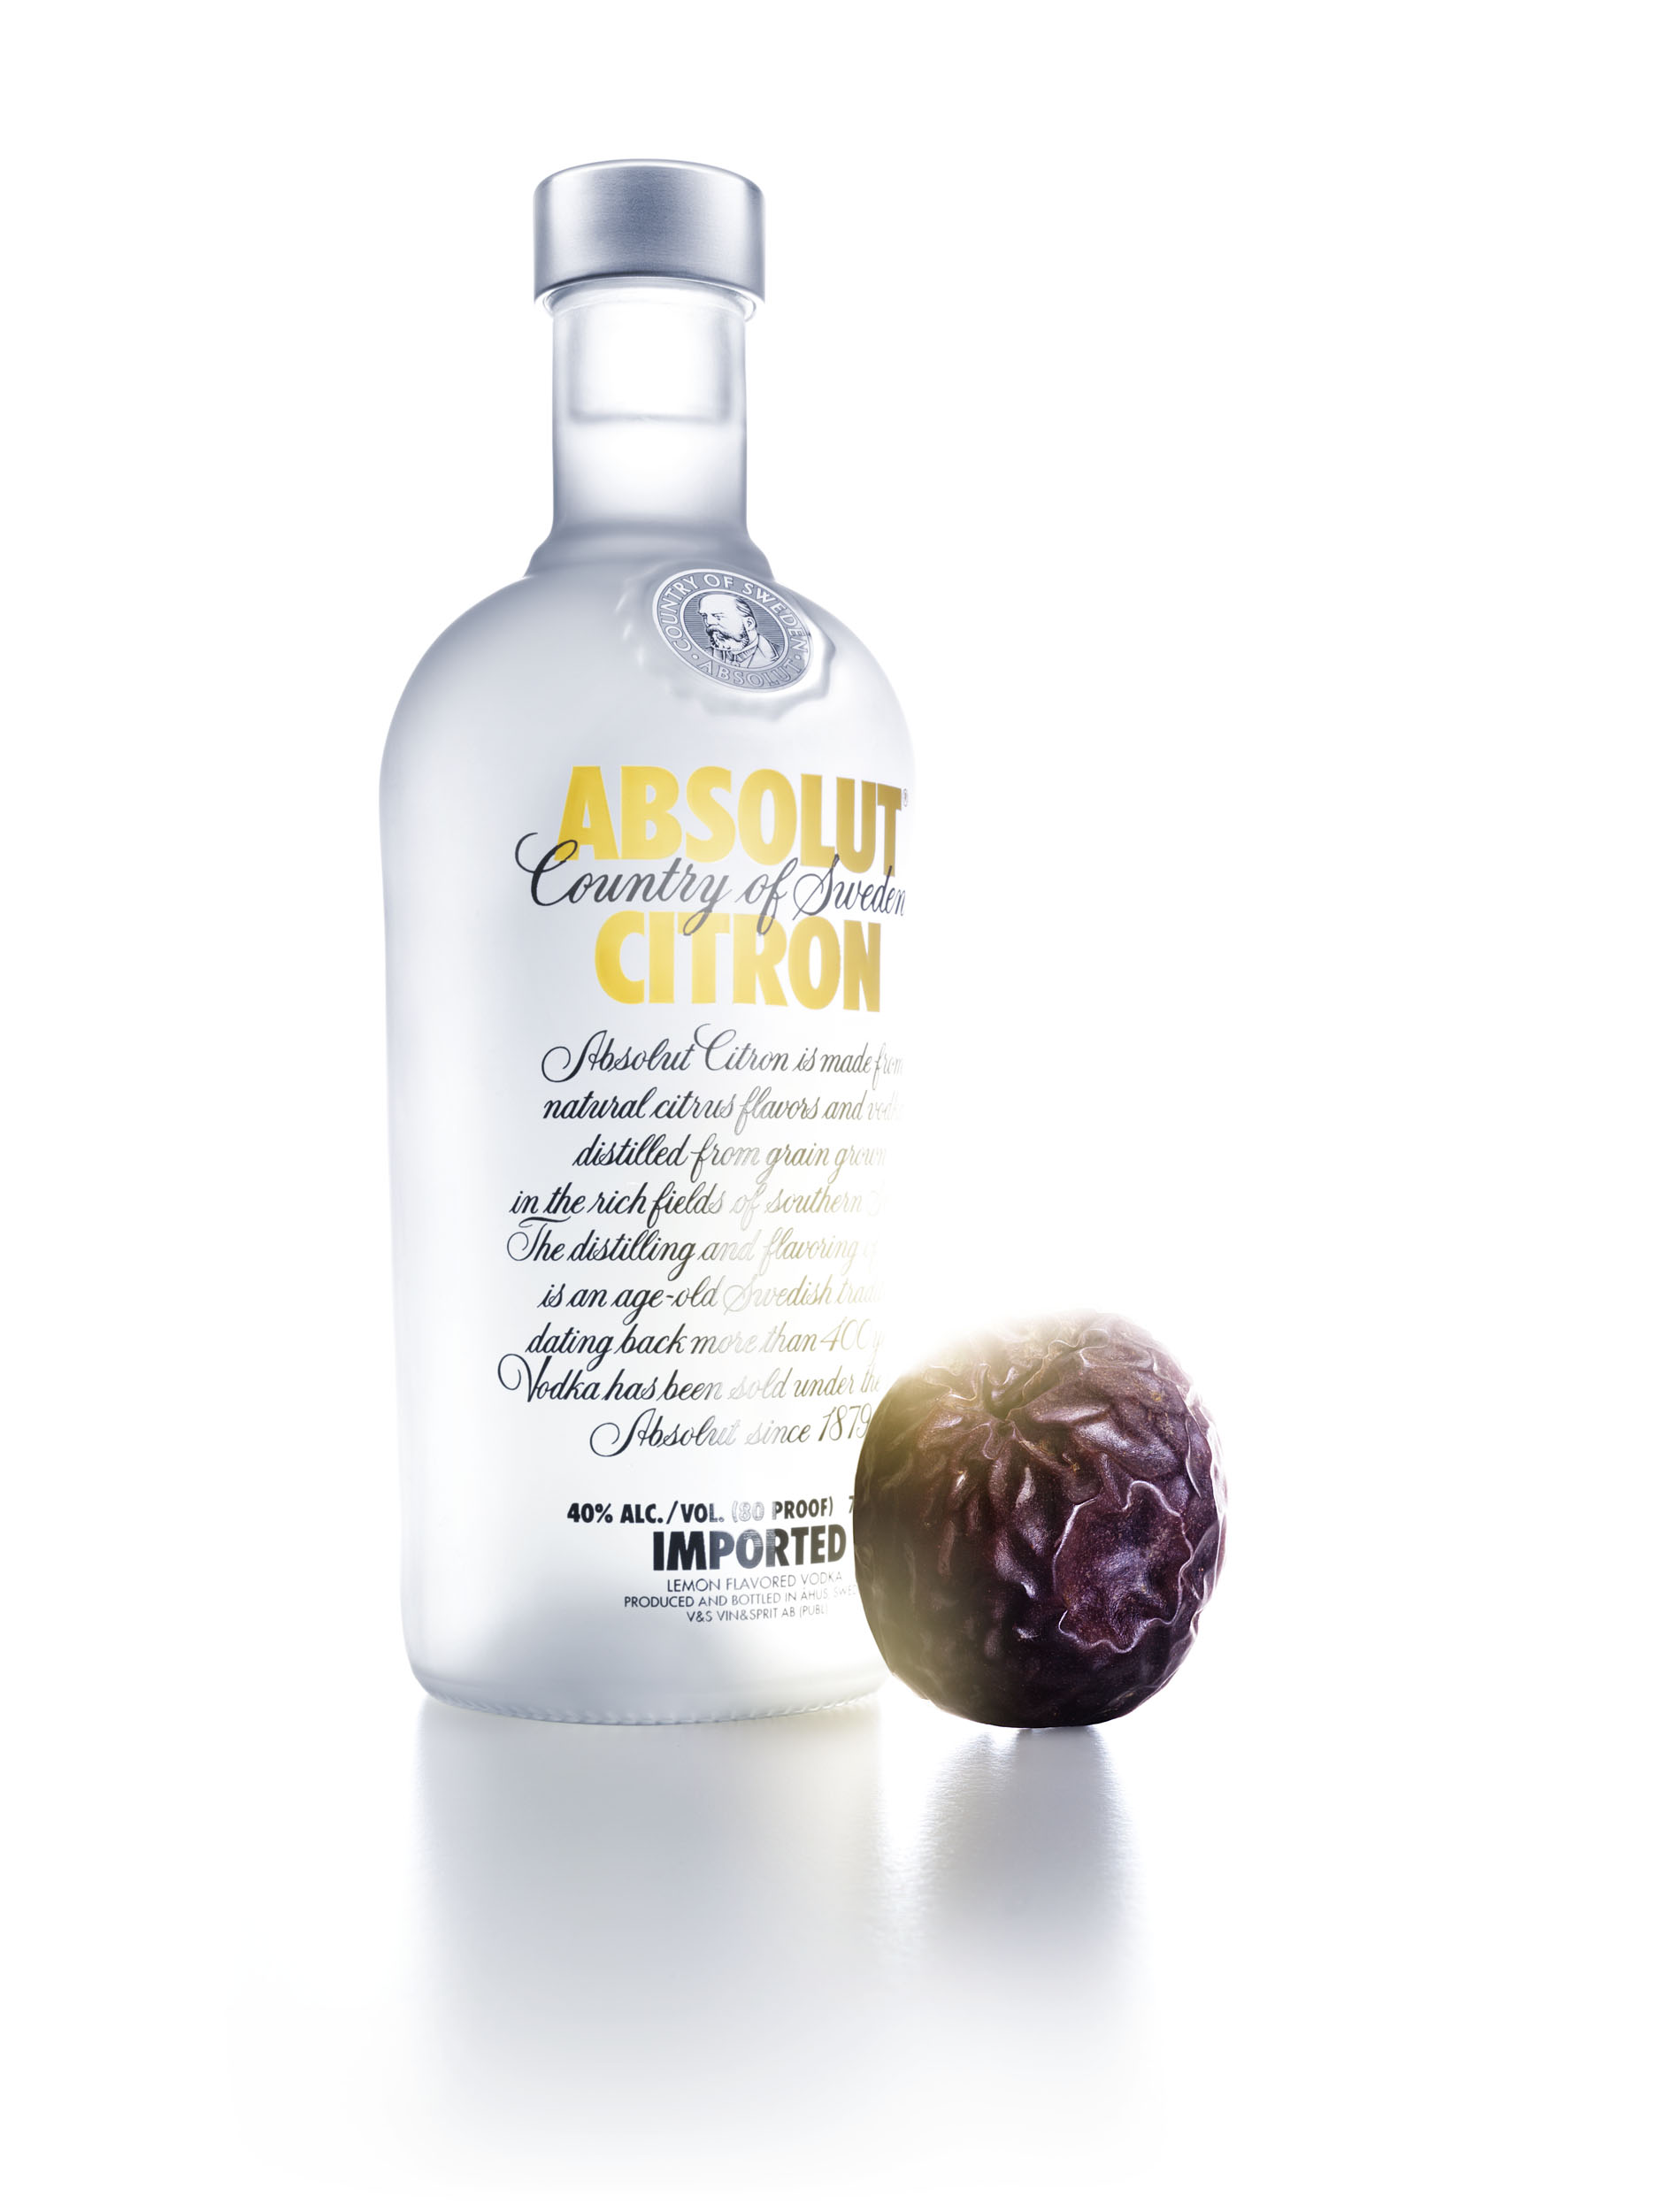 jensmortensen-absolut-vodka-da945b4b